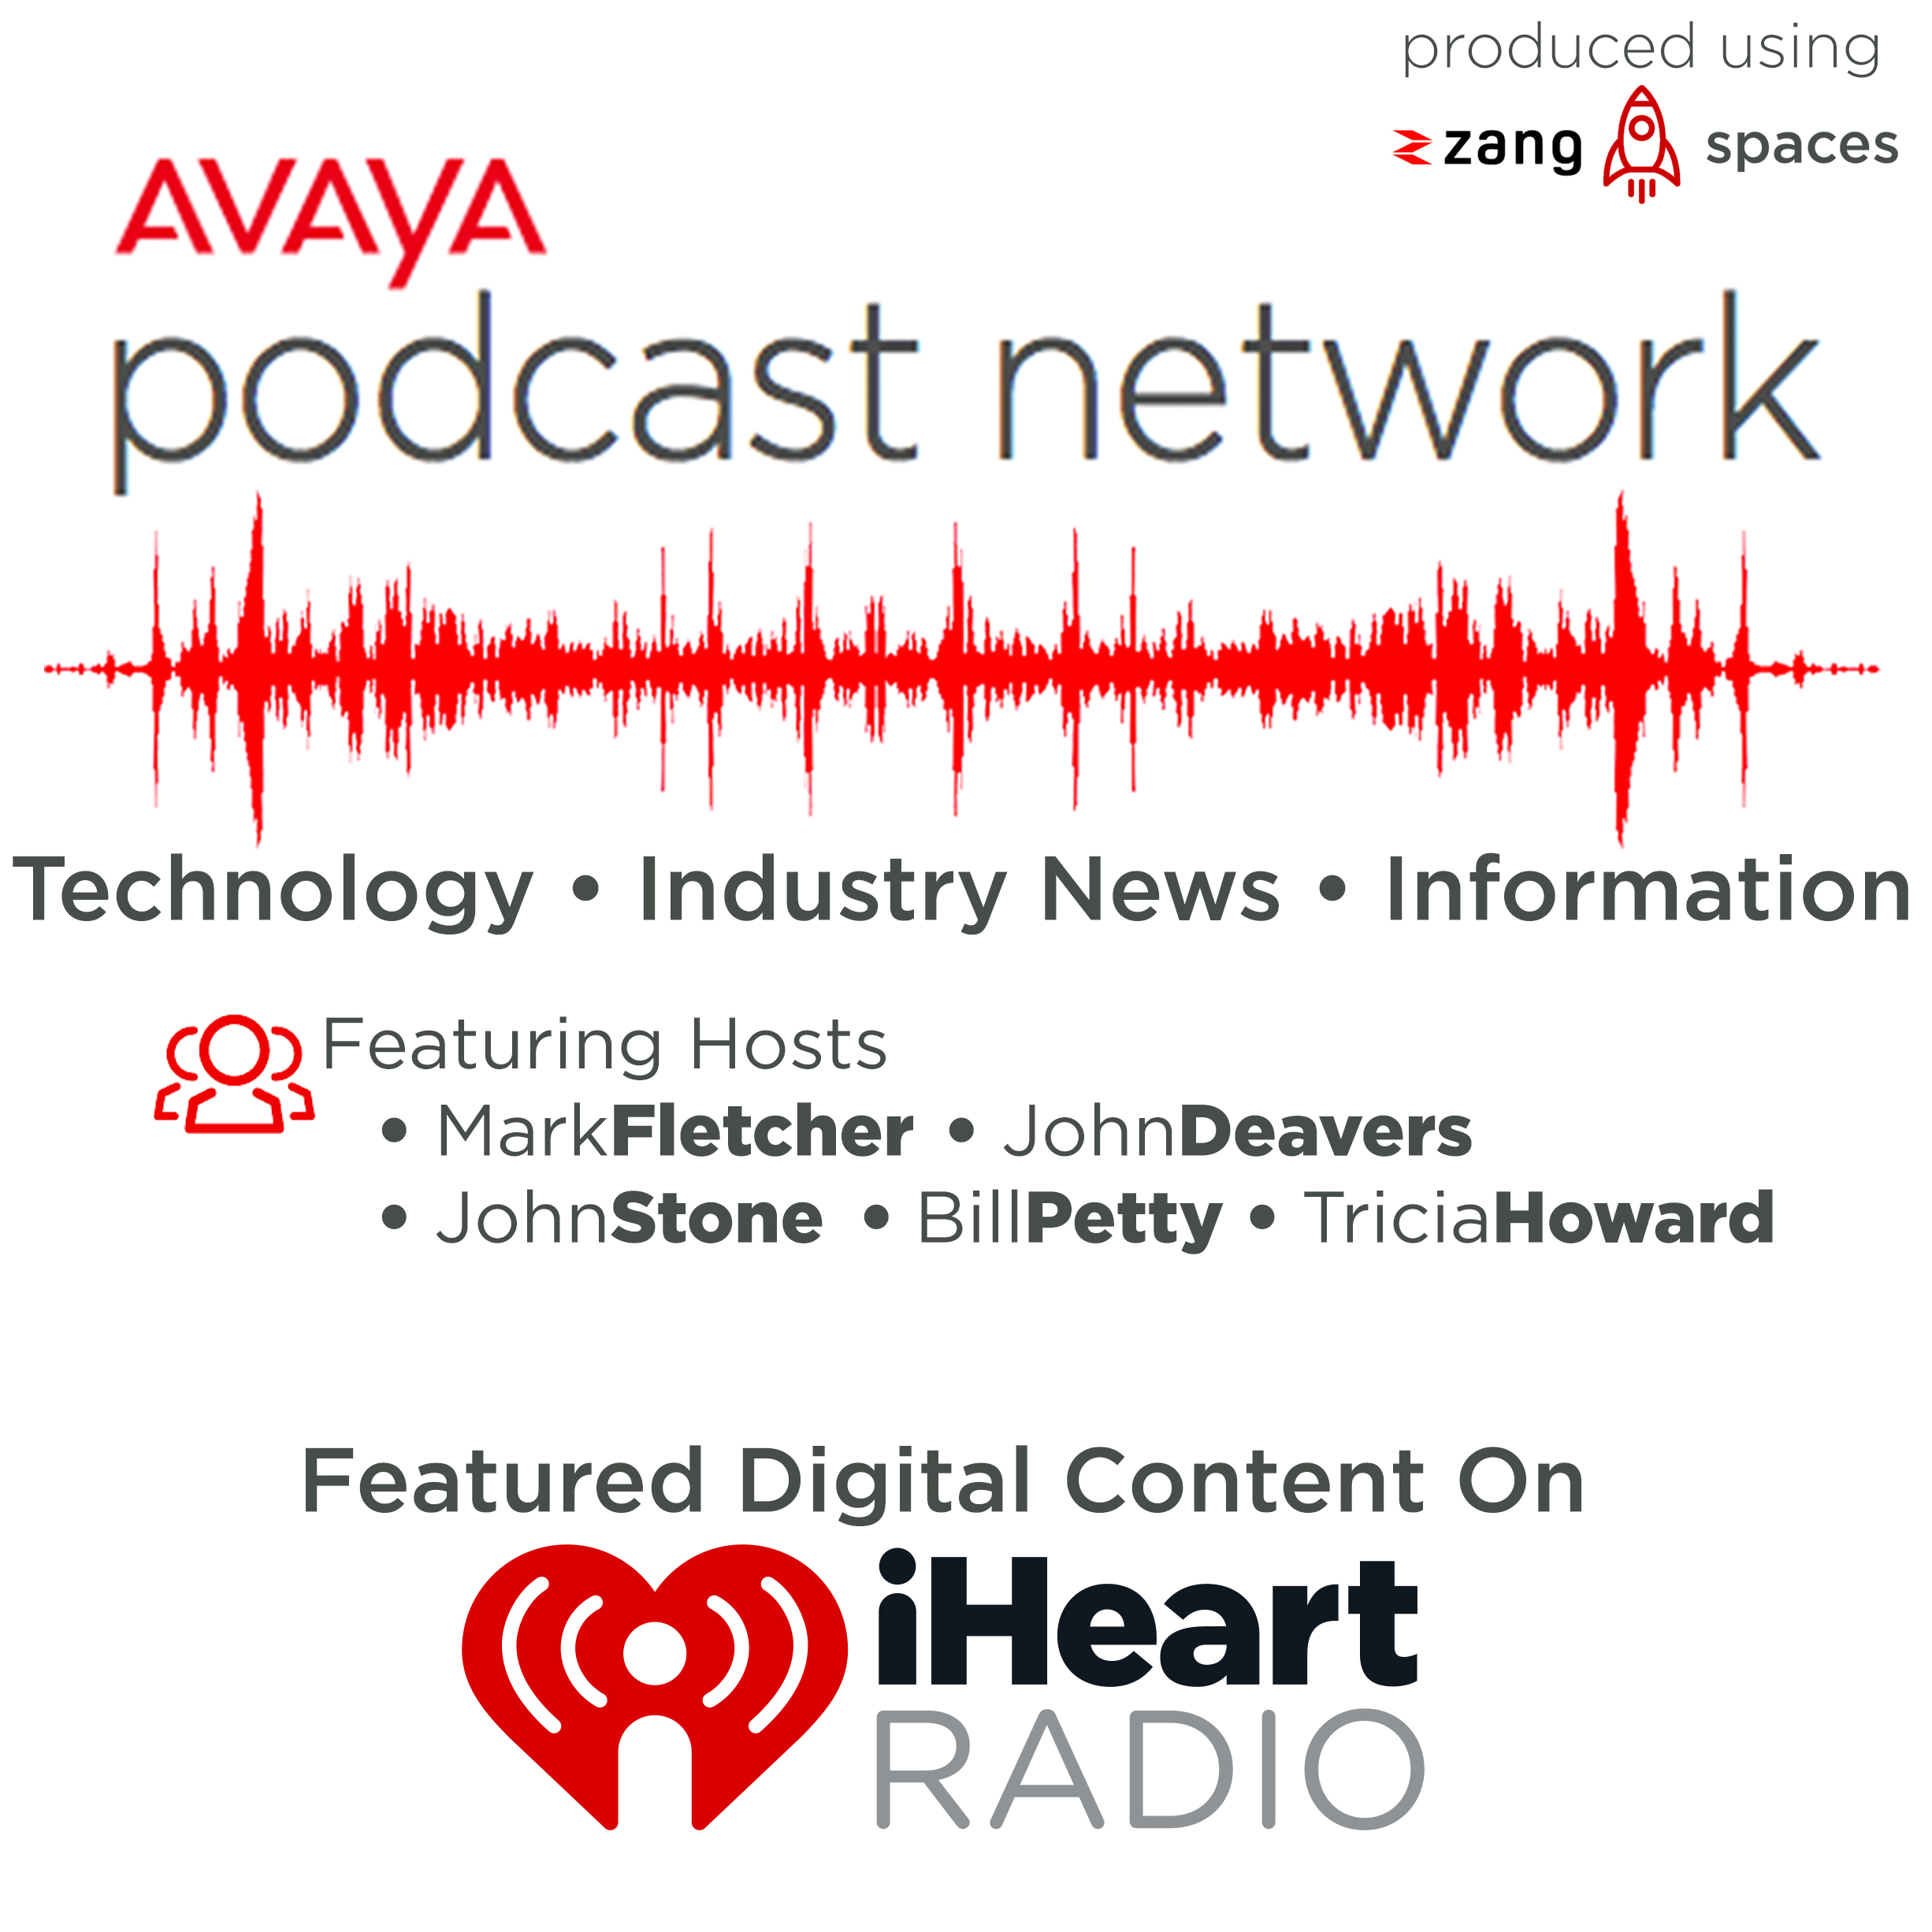 APN - AVAYA PODCAST NETWORK™